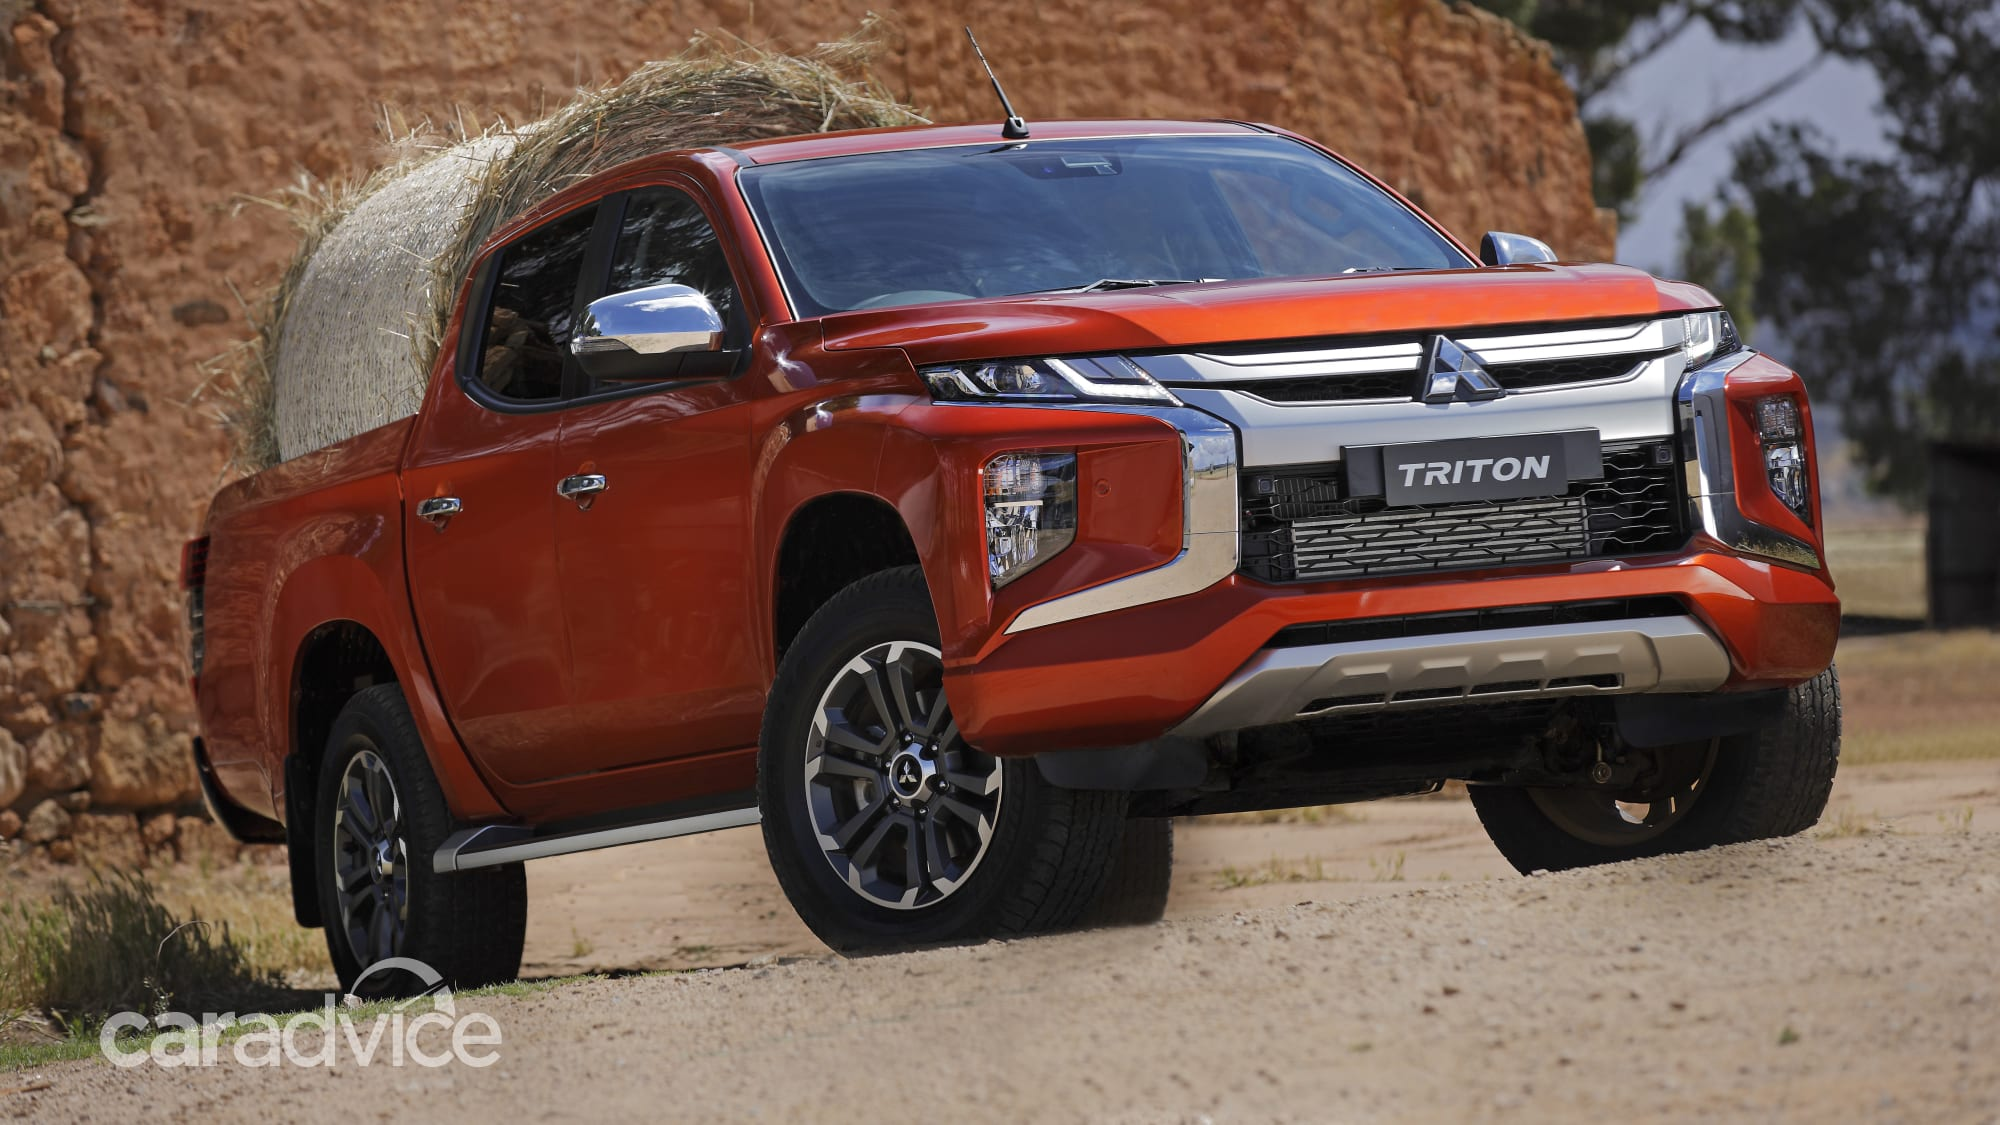 2019 Mitsubishi Triton Upgrade Revealed Caradvice Intended For Ucwords]